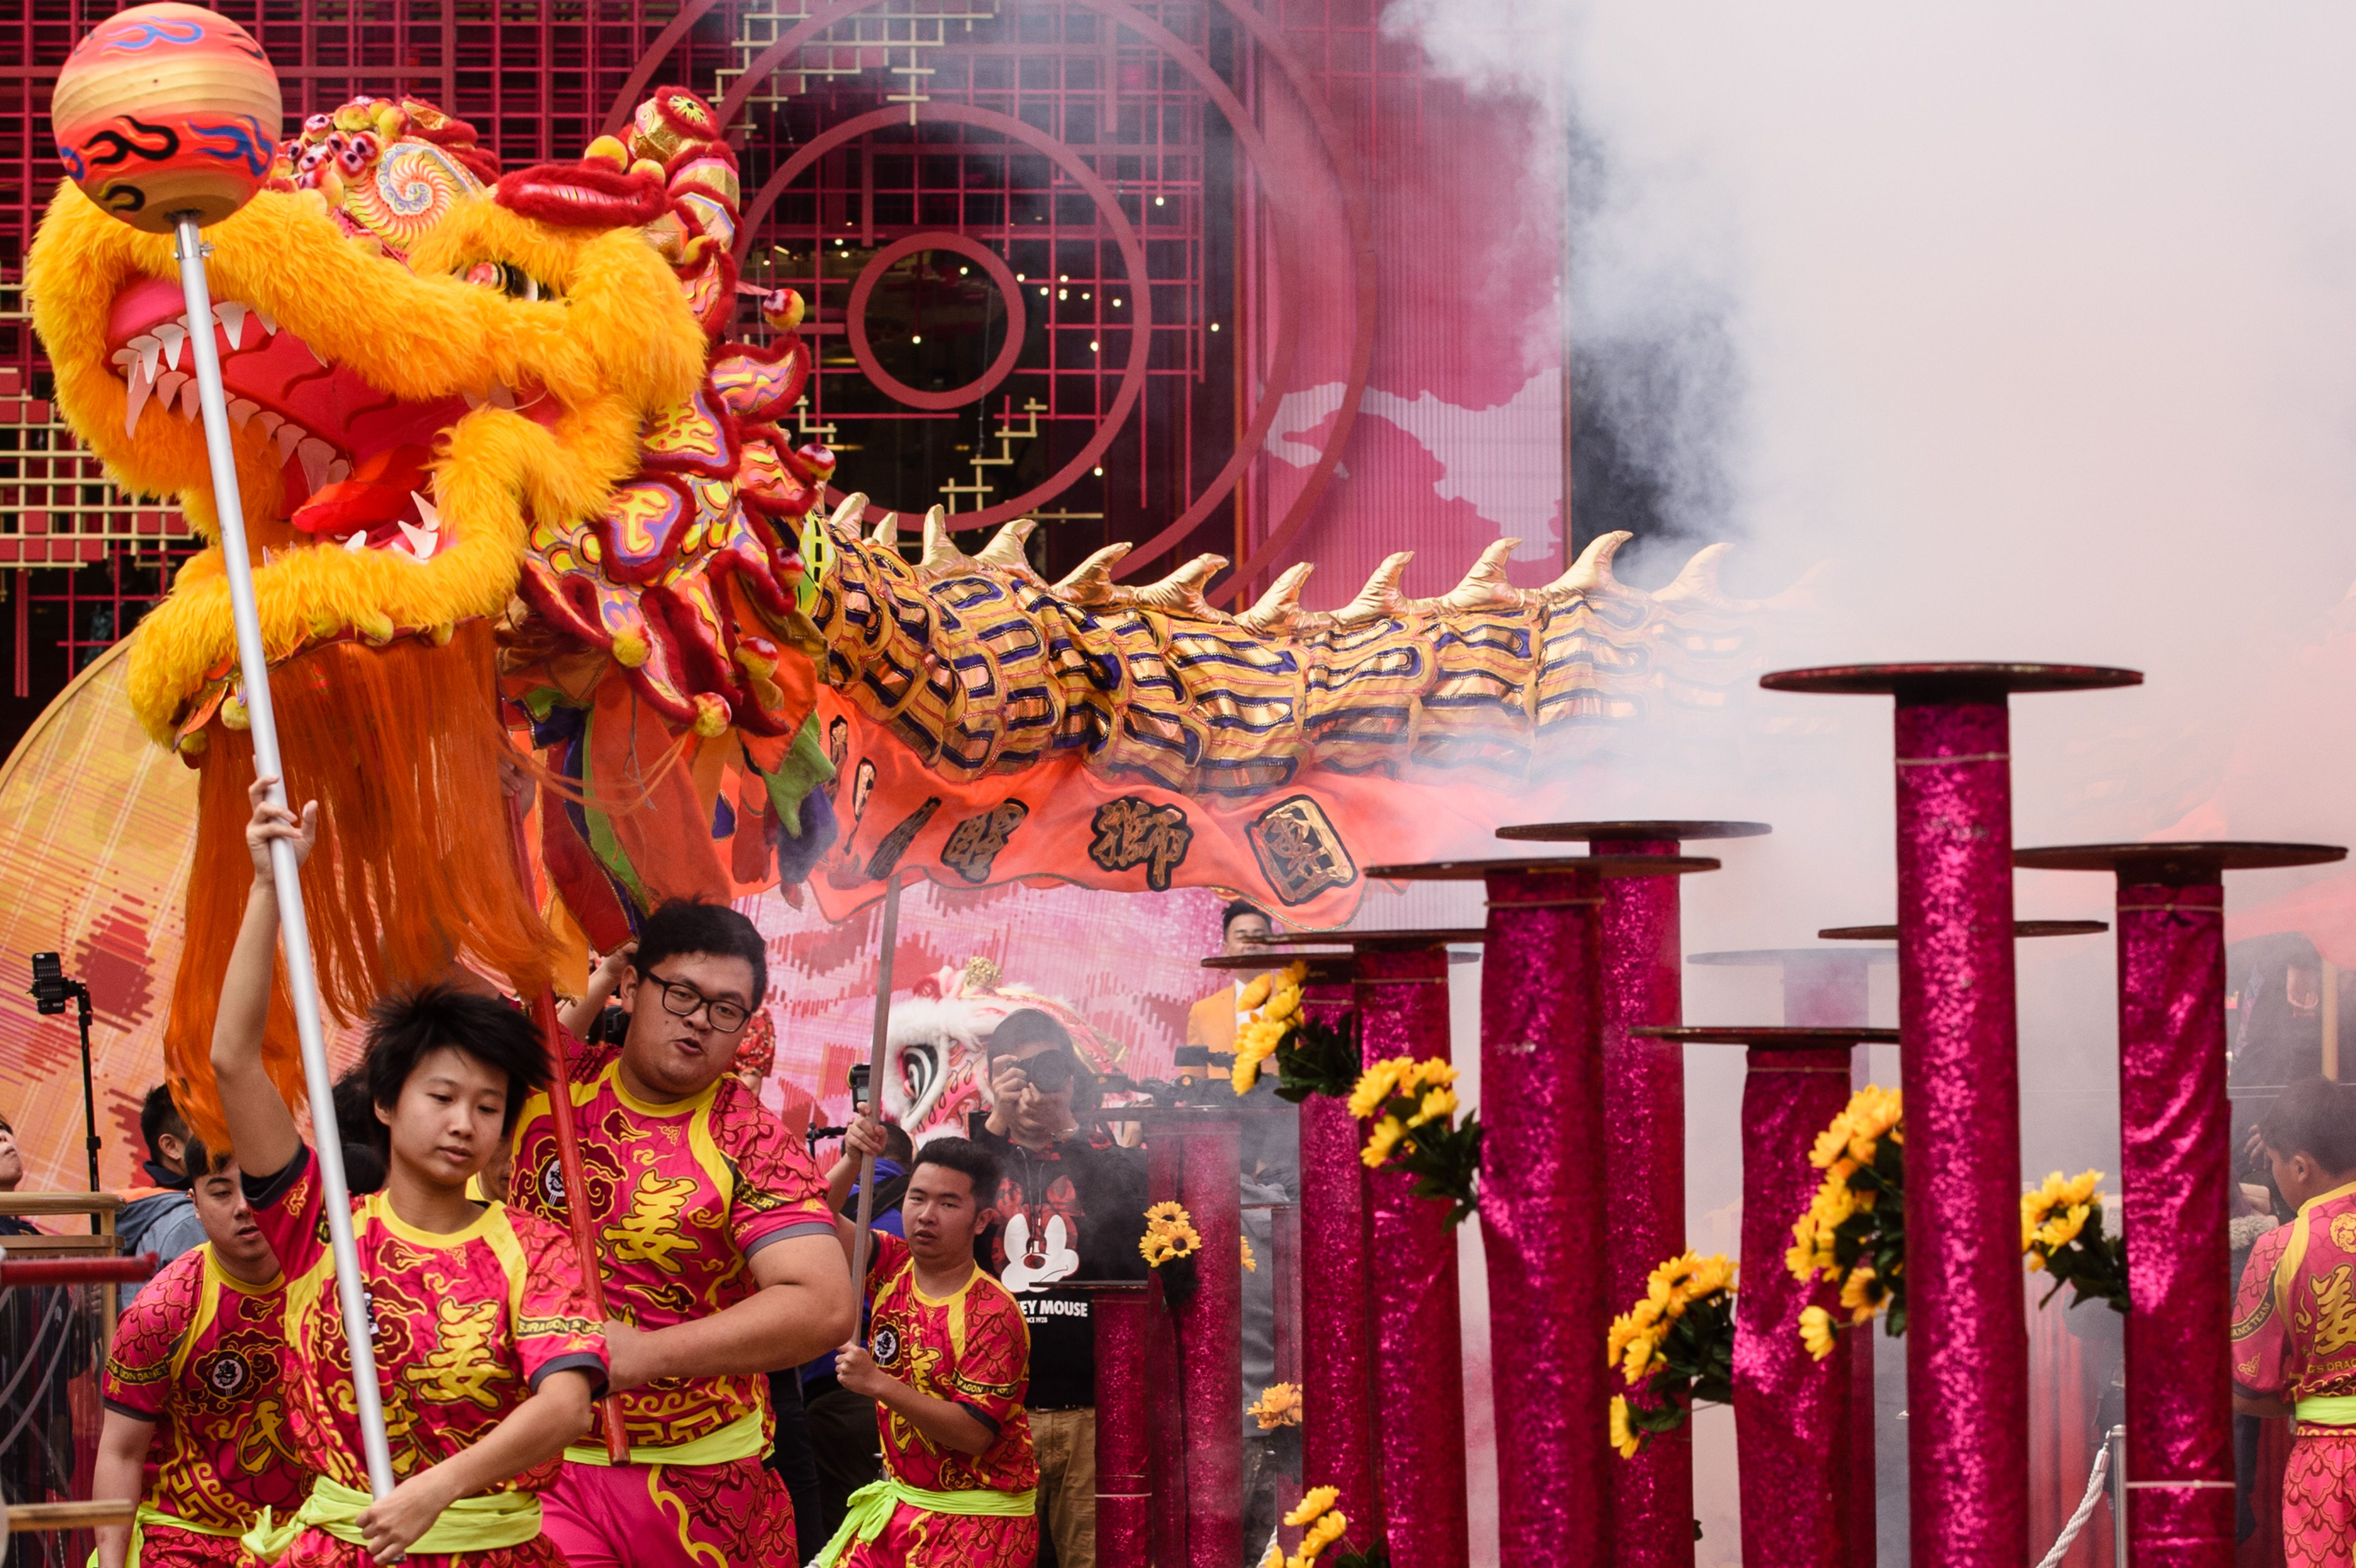 Performers take part in a lion dance show as part of the Lunar New Year celebrations in Hong Kong on Jan. 31, 2017.